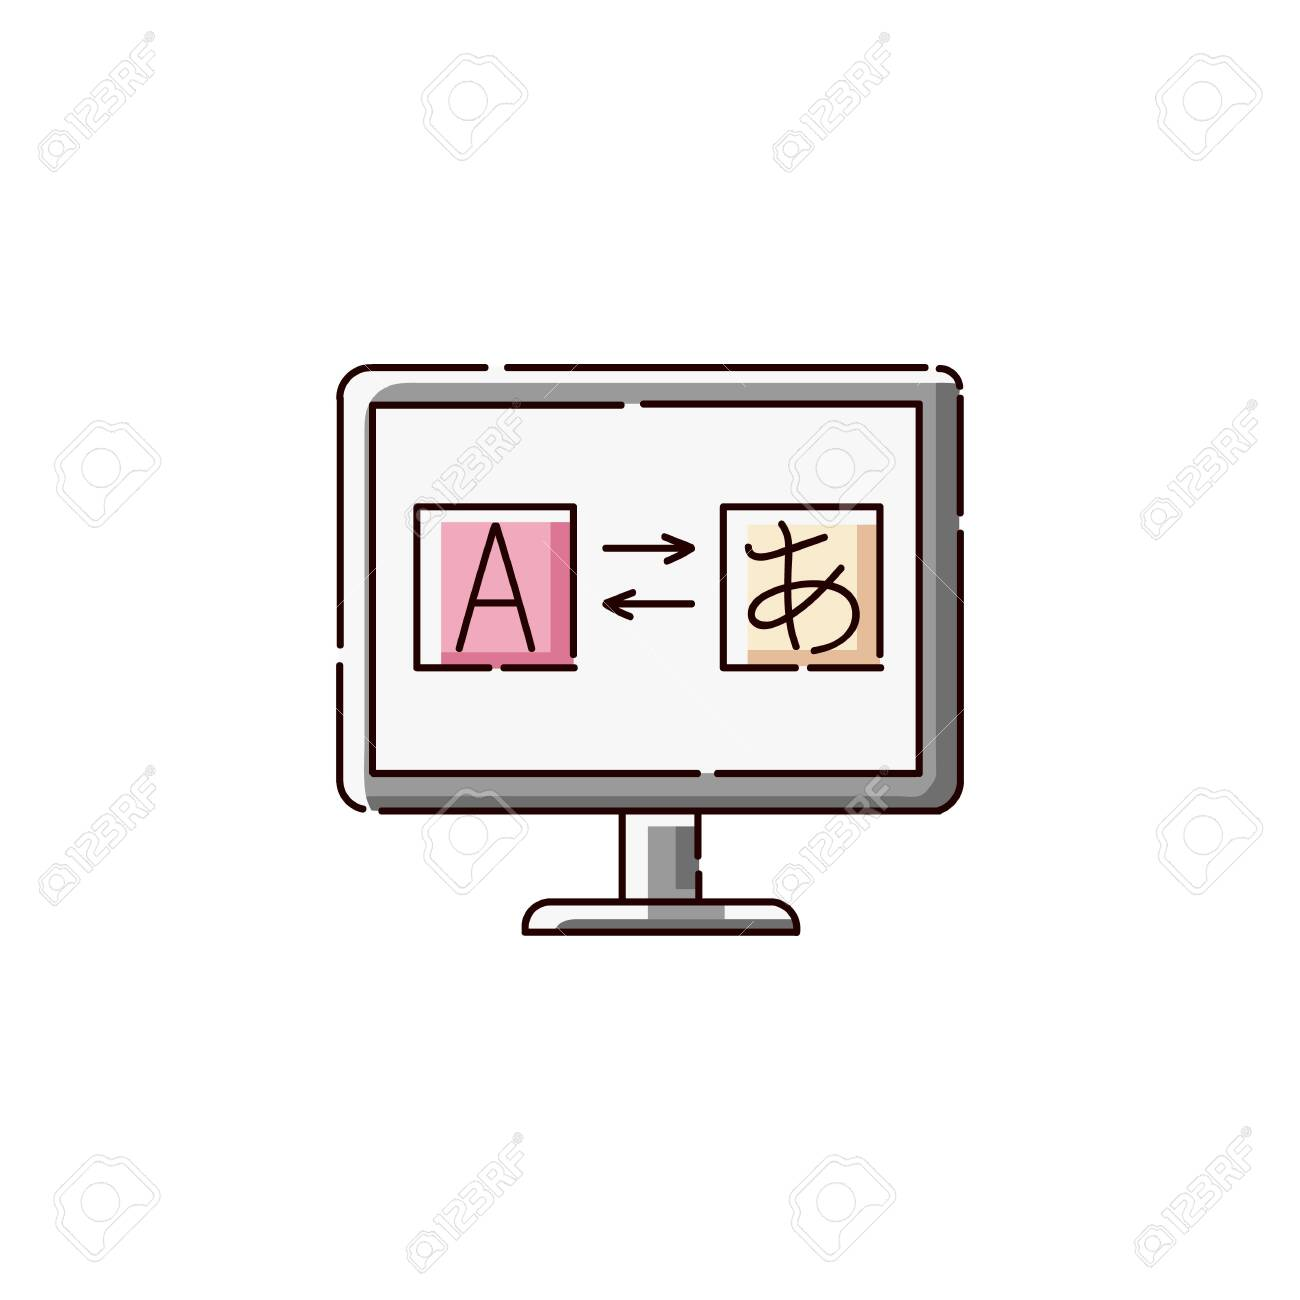 Online translator or language learning website icon with foreign